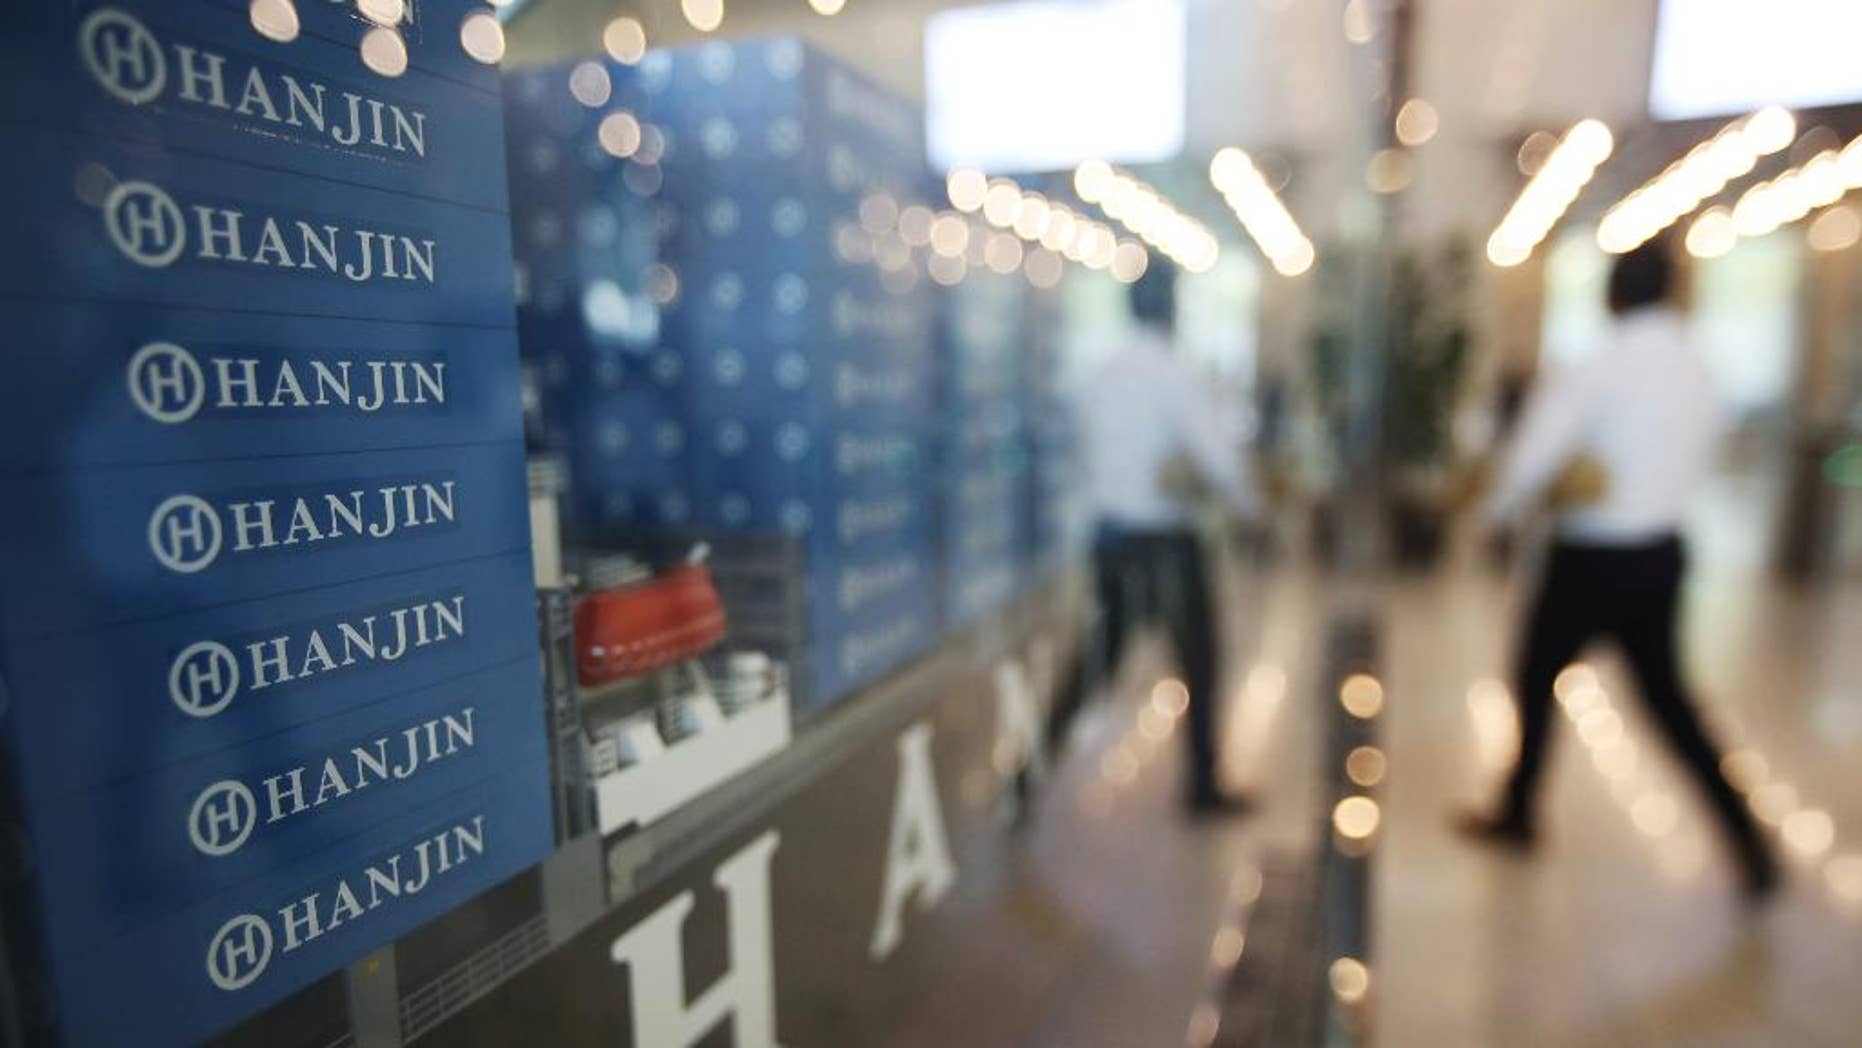 A model of container ship with Hanjin Shipping Co.'s logos is displayed at its head office in Seoul, South Korea, Thursday, Sept. 22, 2016. Hanjin Shipping is to receive as much as $100 million in additional funds to resolve the cargo crisis caused by its slide toward bankruptcy. (Park Dong-ju/Yonhap via AP) KOREA OUT